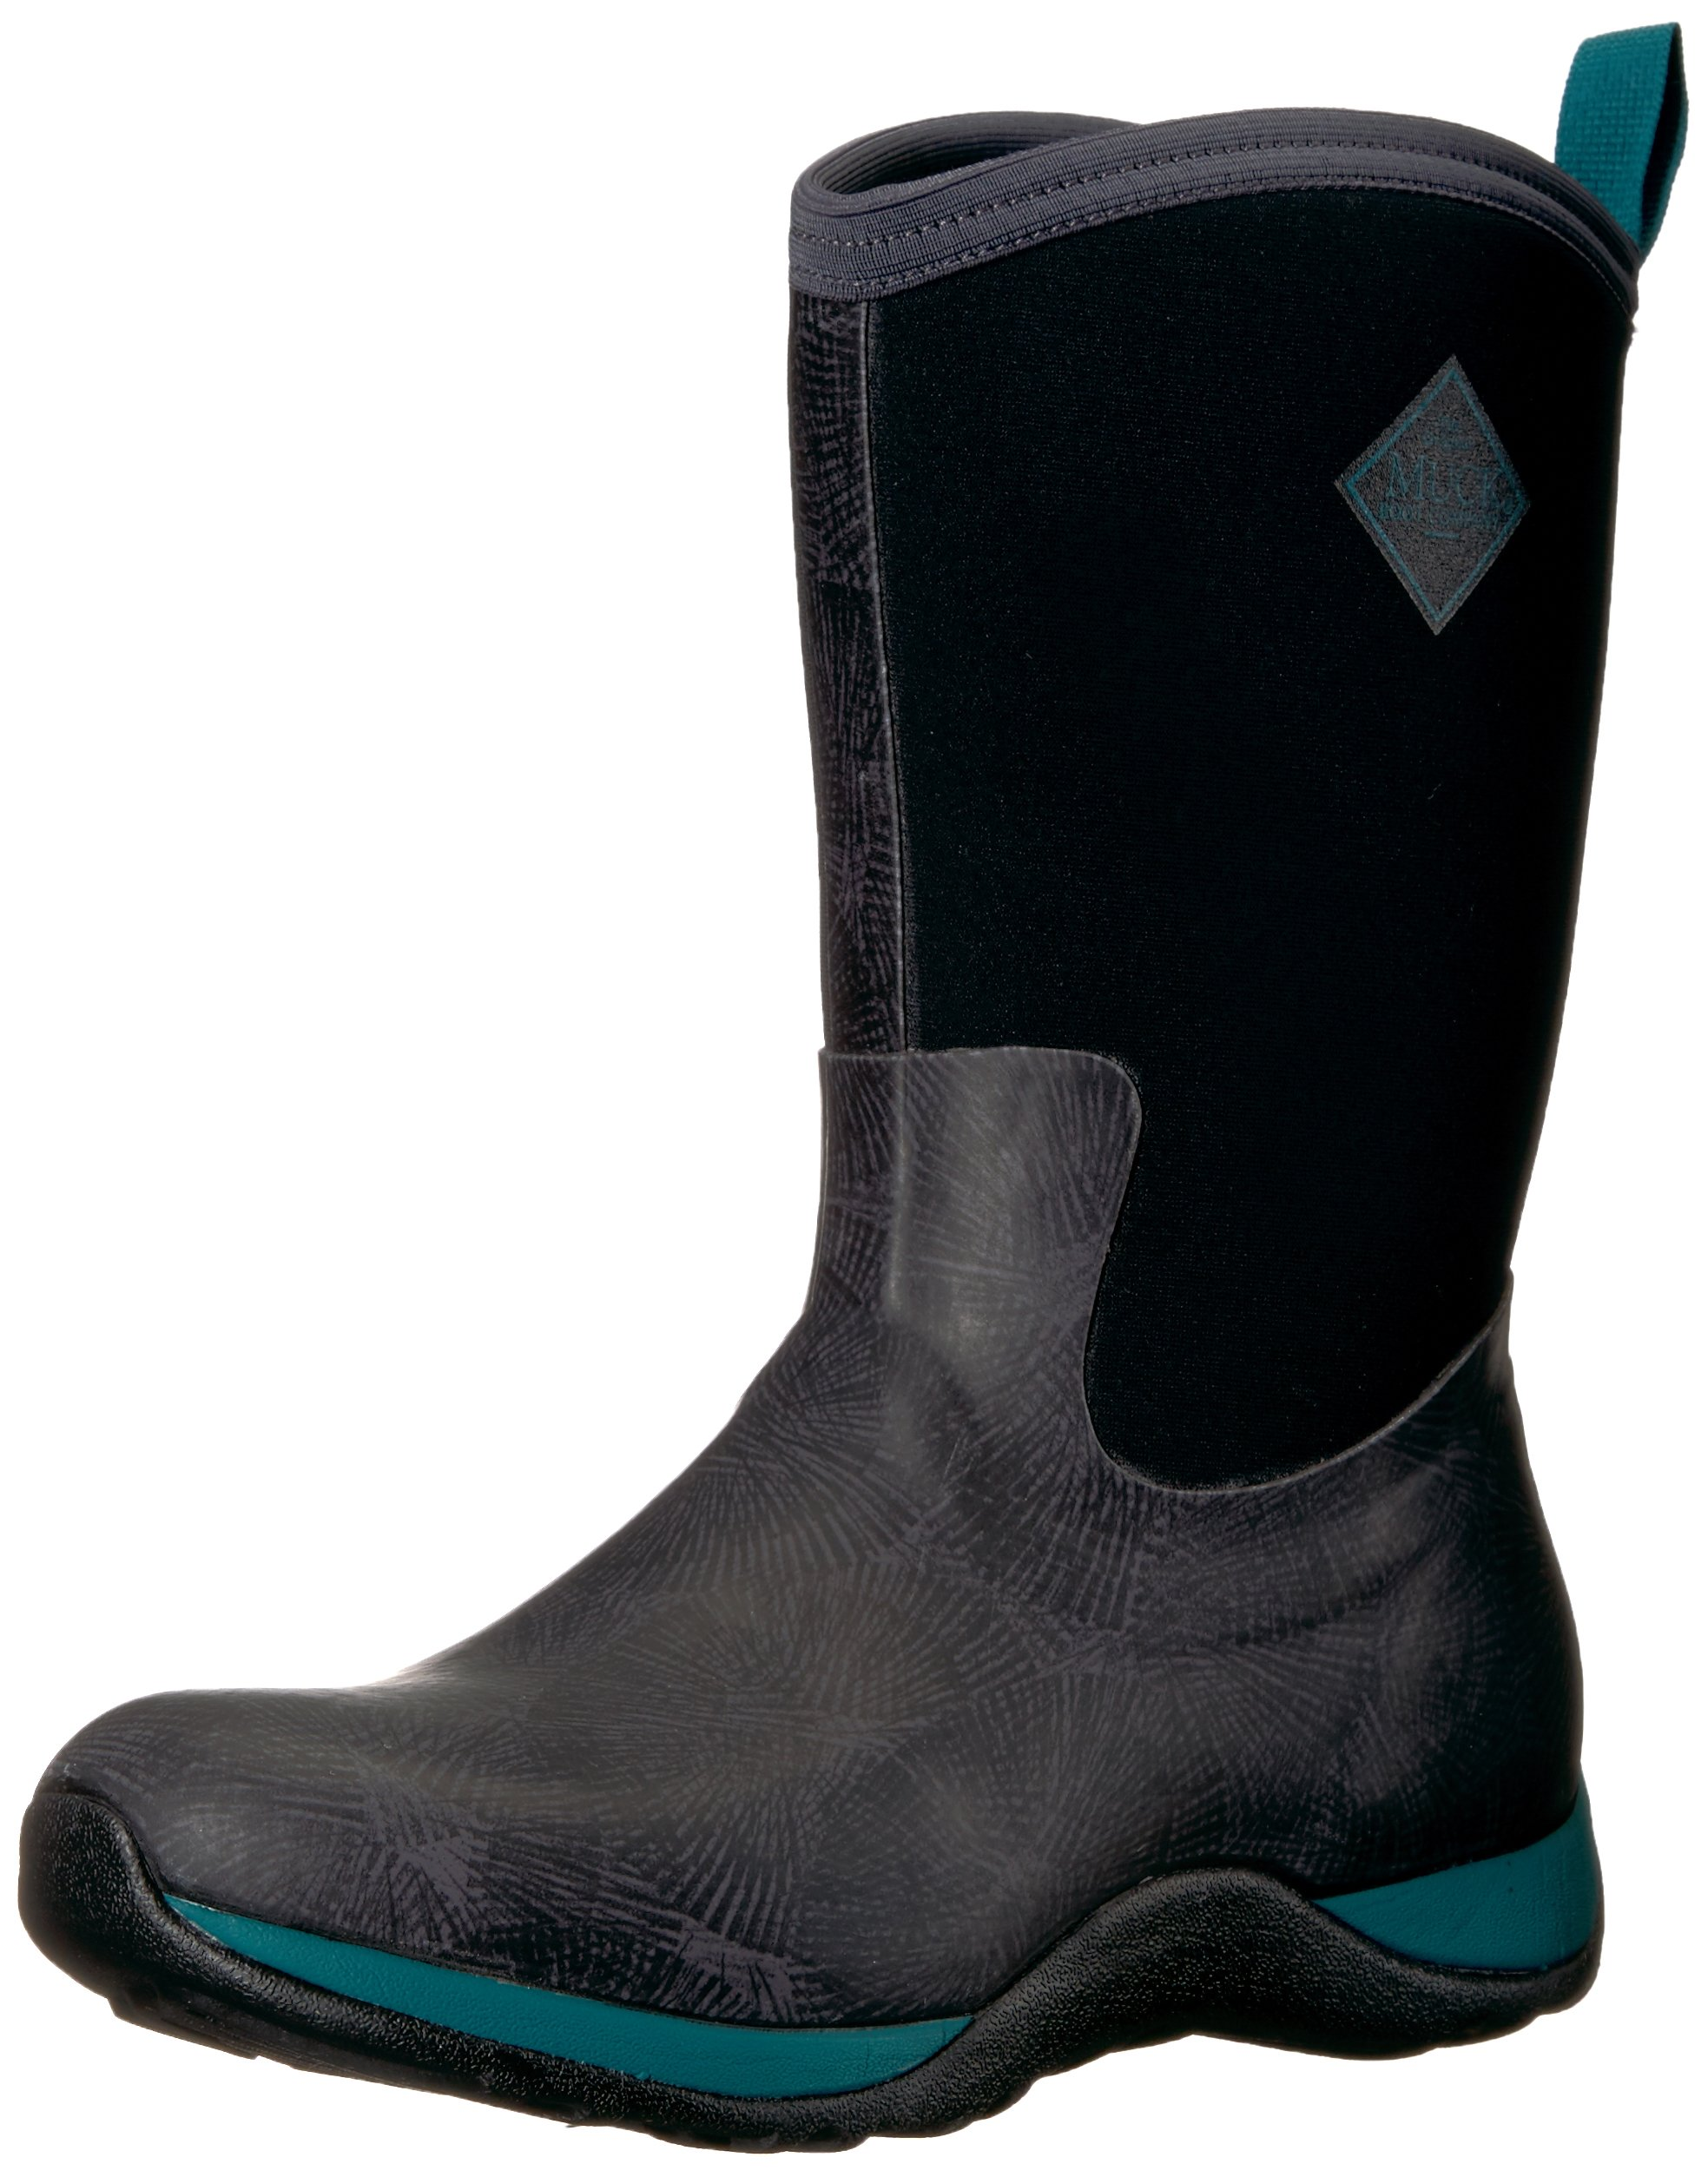 Muck Boot Women's Arctic Weekend Print Work Boot, Black, Gray, Spruce/Spiral, 6 M US